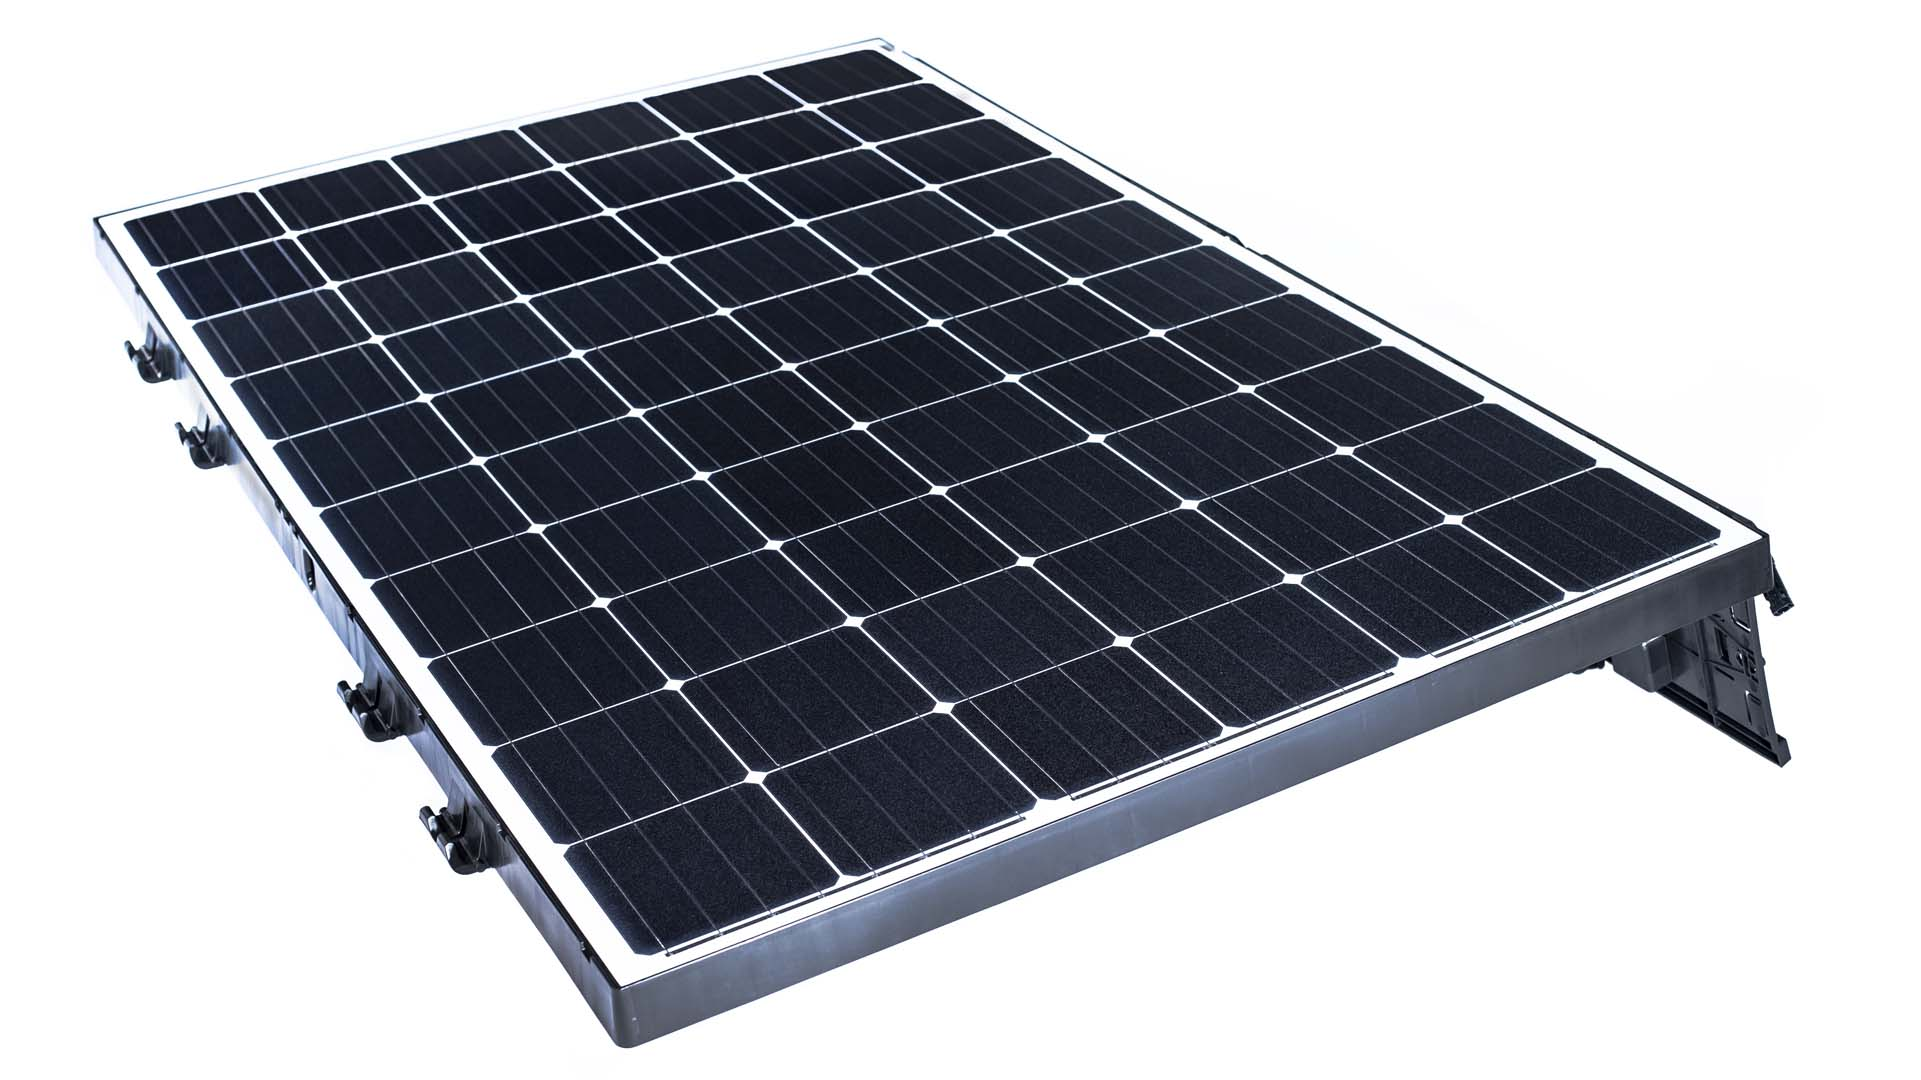 Beamreach Solar, formerly Solexel has showcased its new 'Sprint' lightweight PV module system for flat commercial rooftops at Intersolar Europe 2016 and features maximum power capacities ranging from 290 watts to 320 watts. Image: Beamreach Solar